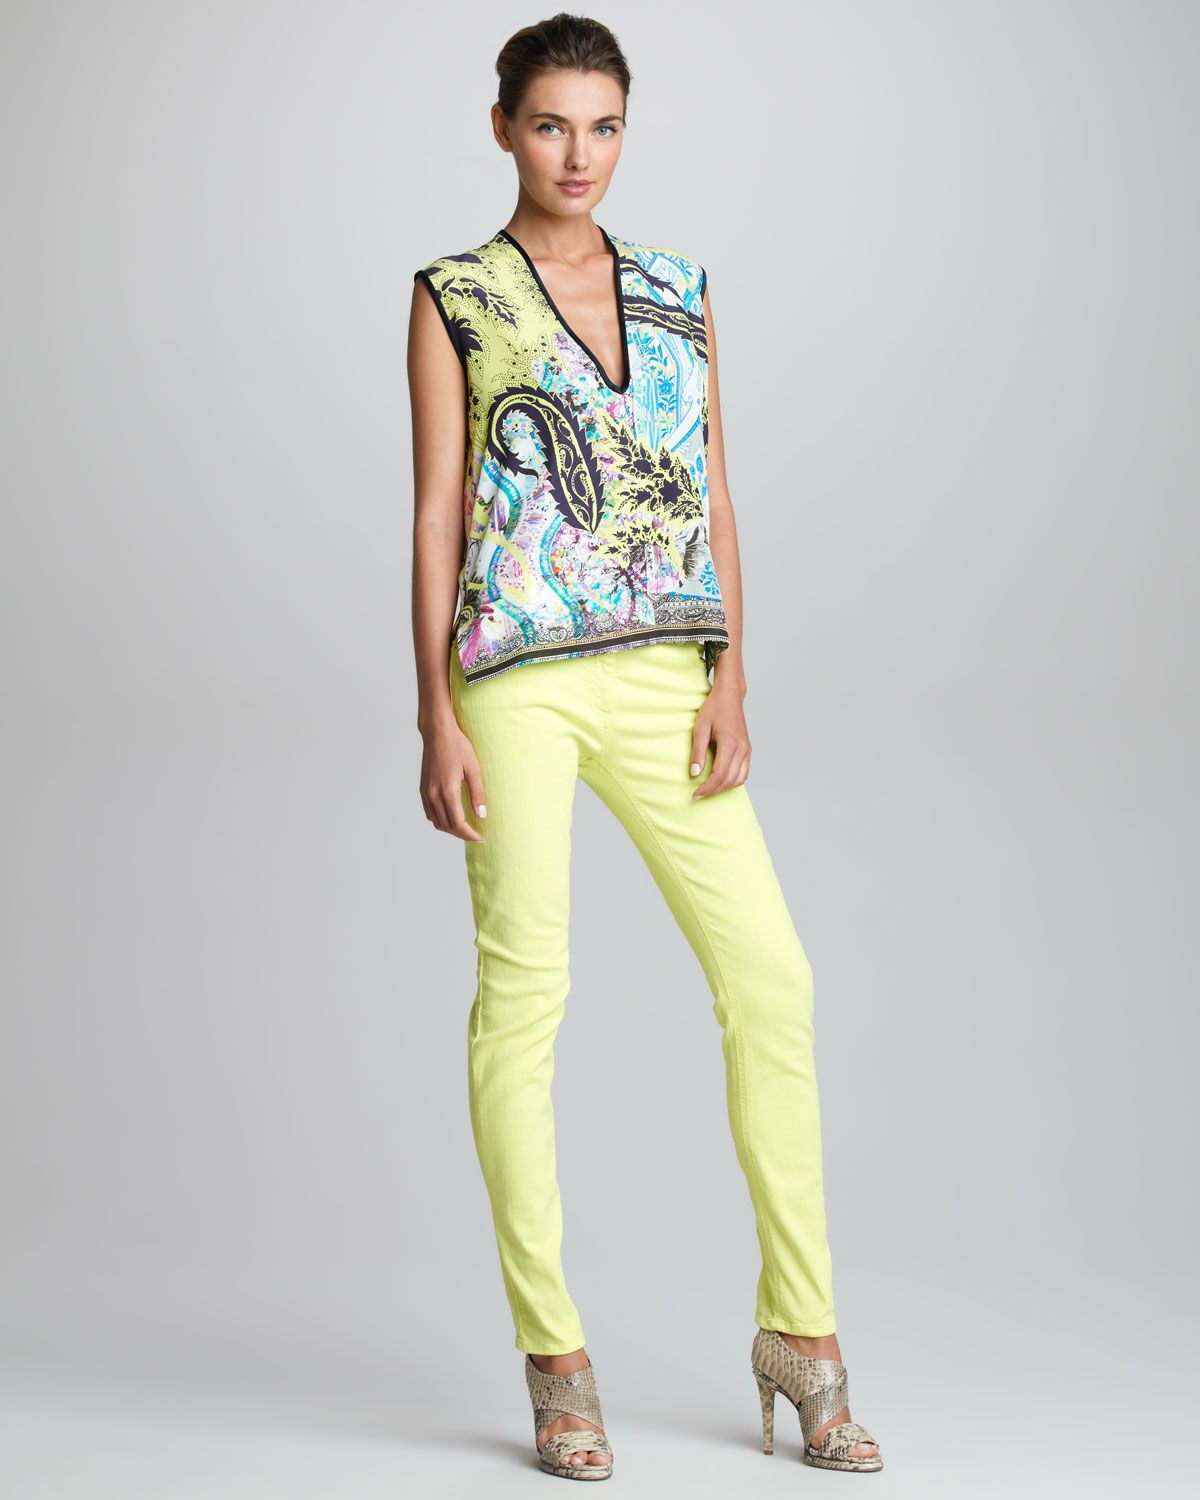 http://ncrni.com/etro-sleeveless-vneck-top-fivepocket-jeans-p-4530.html